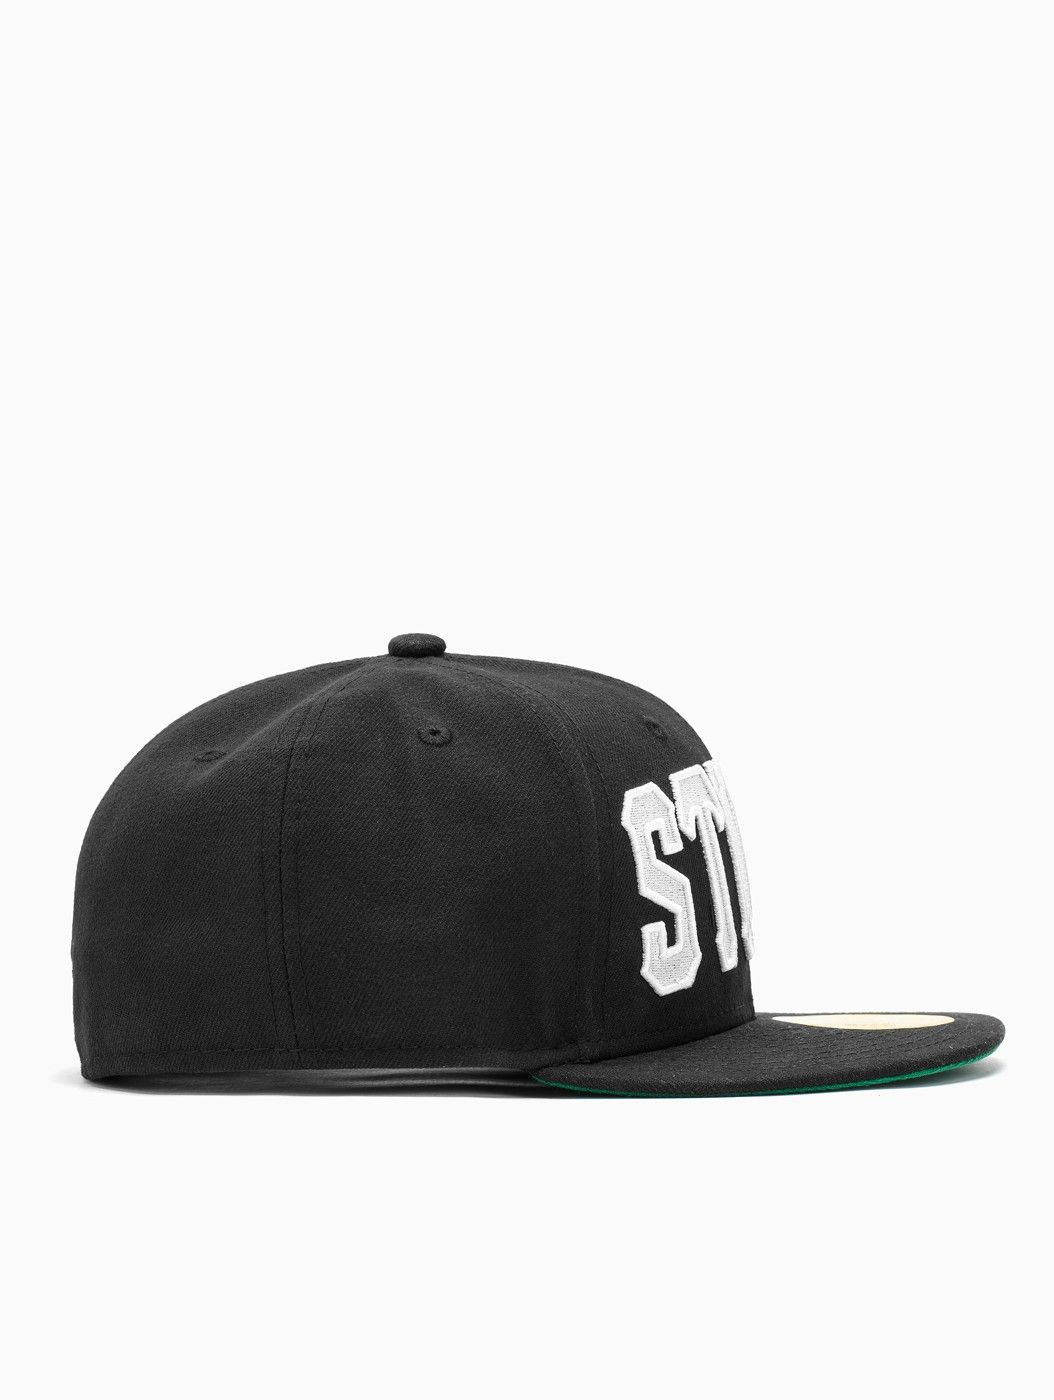 Home team cap from F/W2014-15 New Era x Stussy collection in black